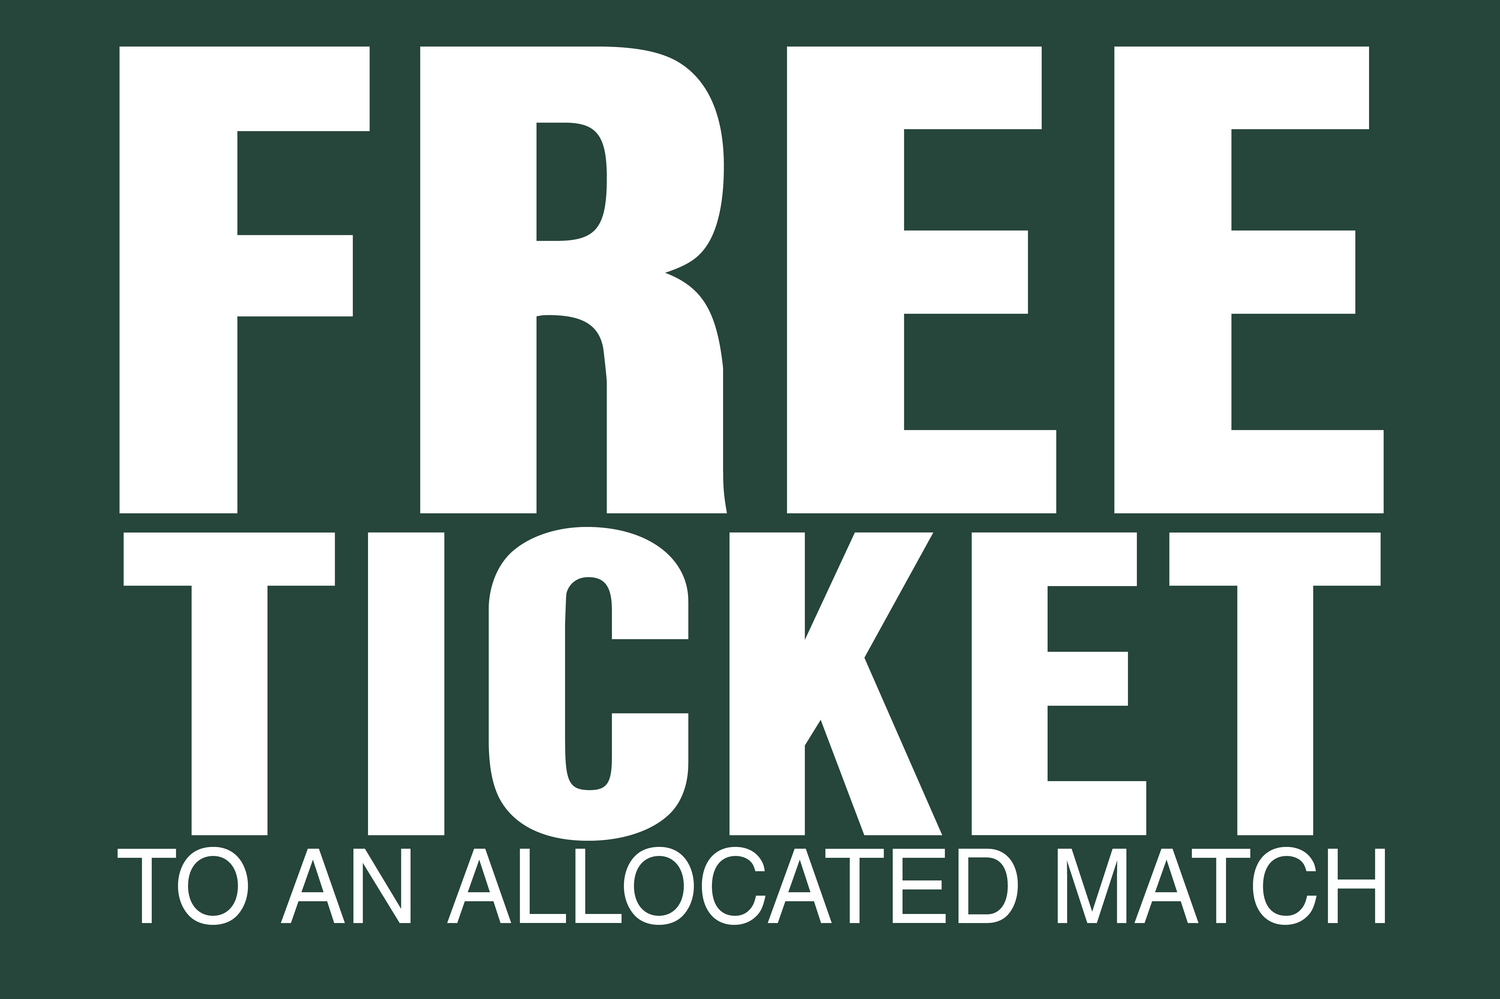 Season Ticket Benefit - free game